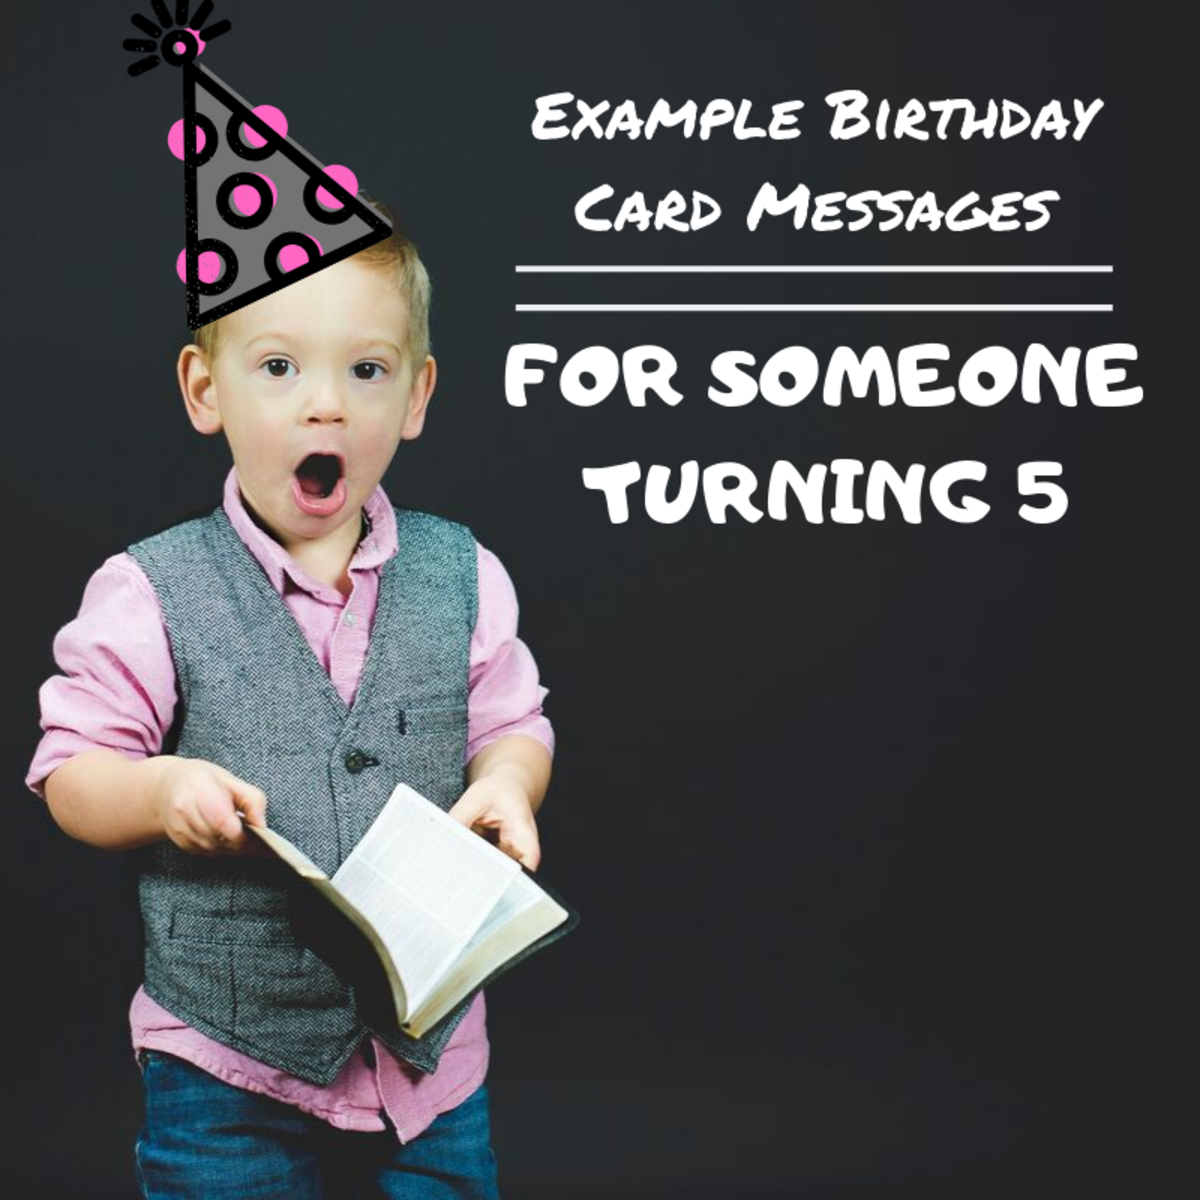 5th Birthday Messages, Wishes, and Poems to Write in a Card